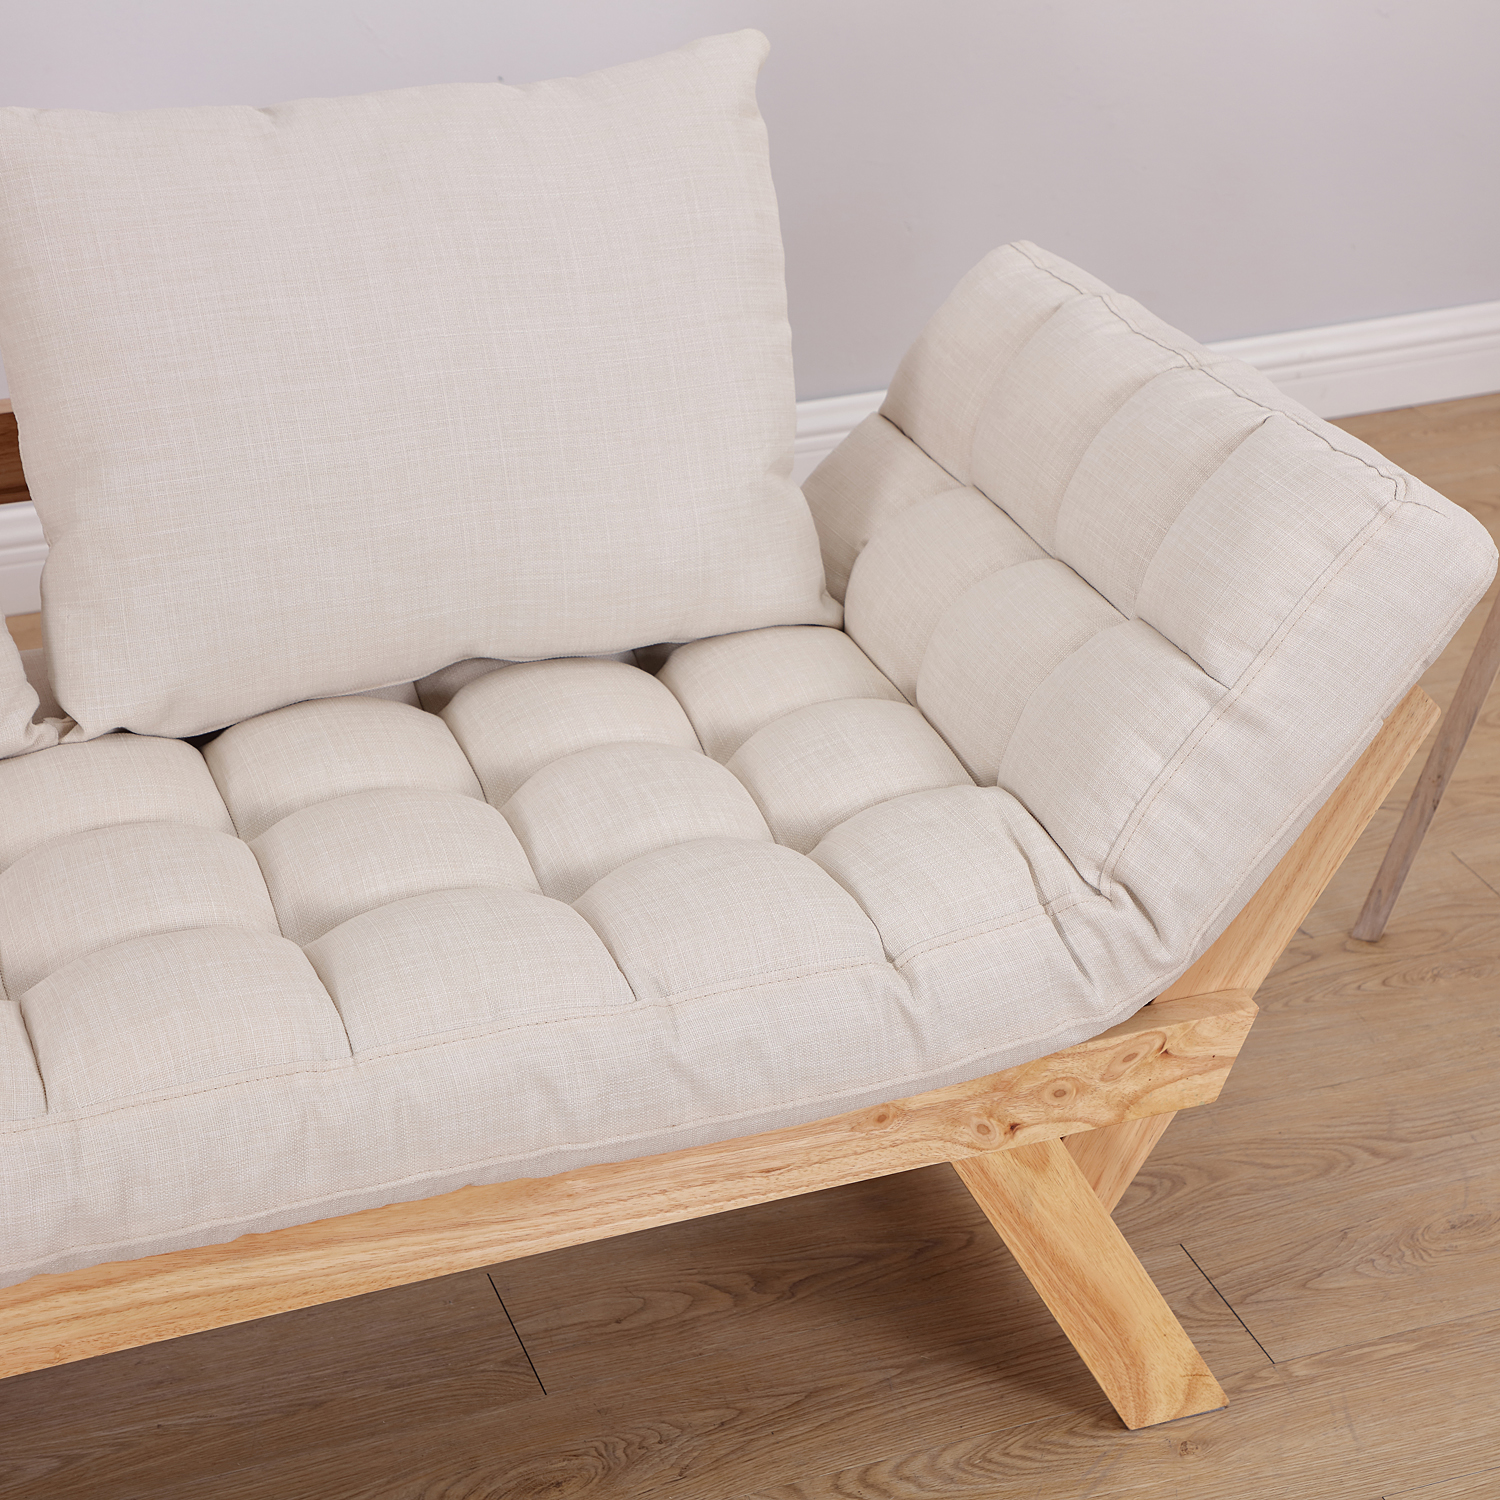 Convertible-Sofa-Bed-Sleeper-Couch-Chaise-Lounge-Chair-Adjustable-Padded-Pillow thumbnail 44